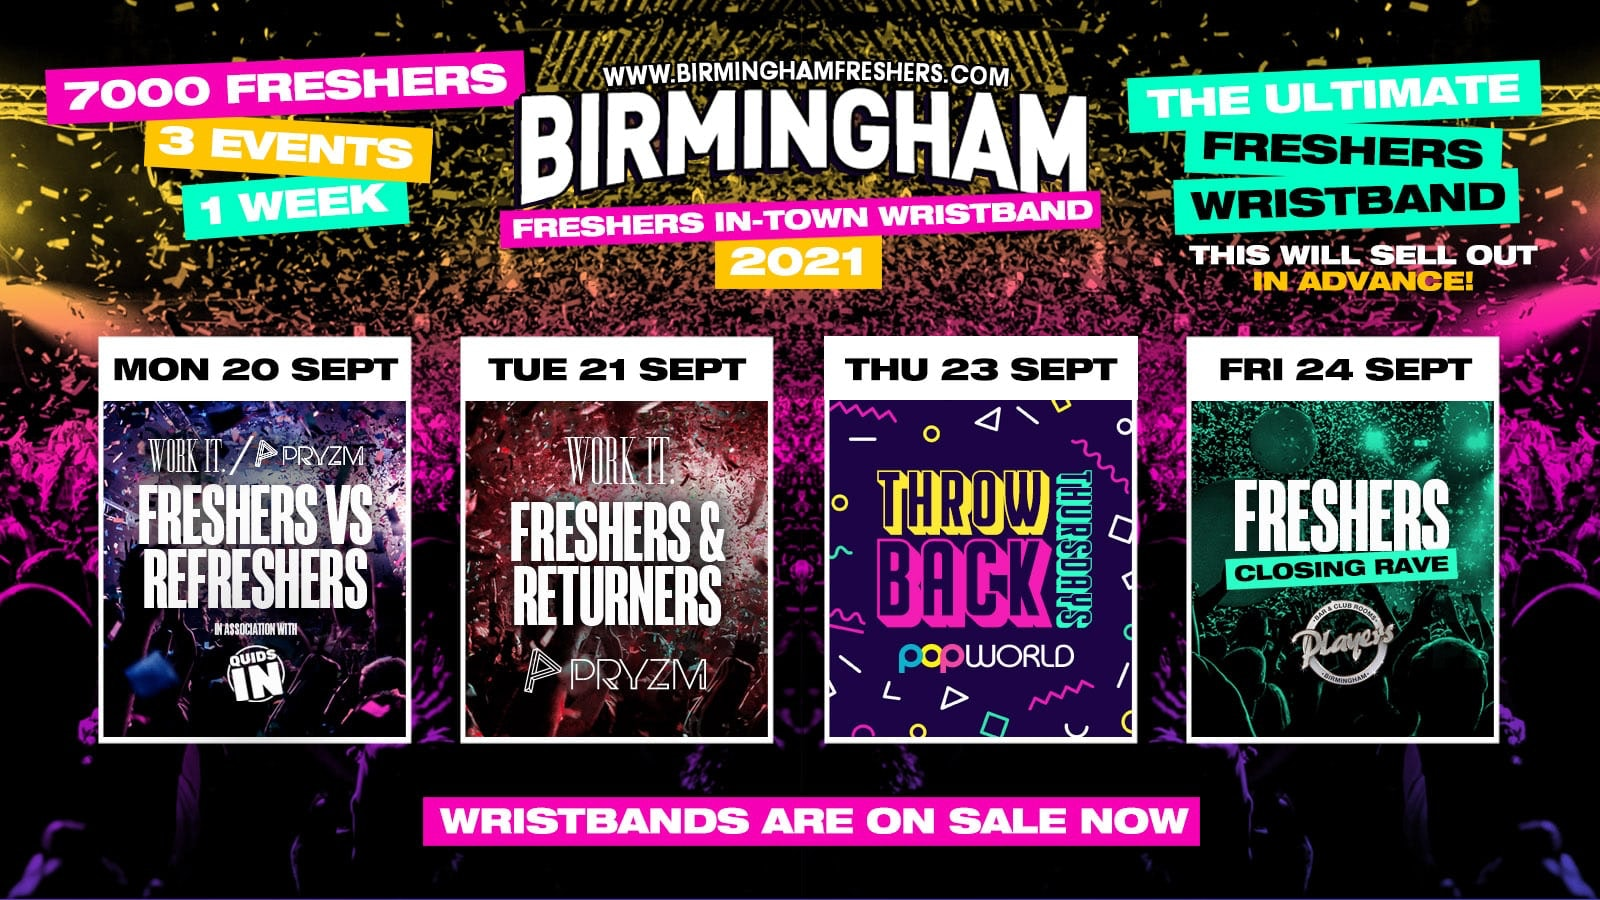 Birmingham Freshers Wristband 2021 – The Official Freshers Pass | Includes the biggest events in Birmingham – 2nd & 3rd Years Tickets!